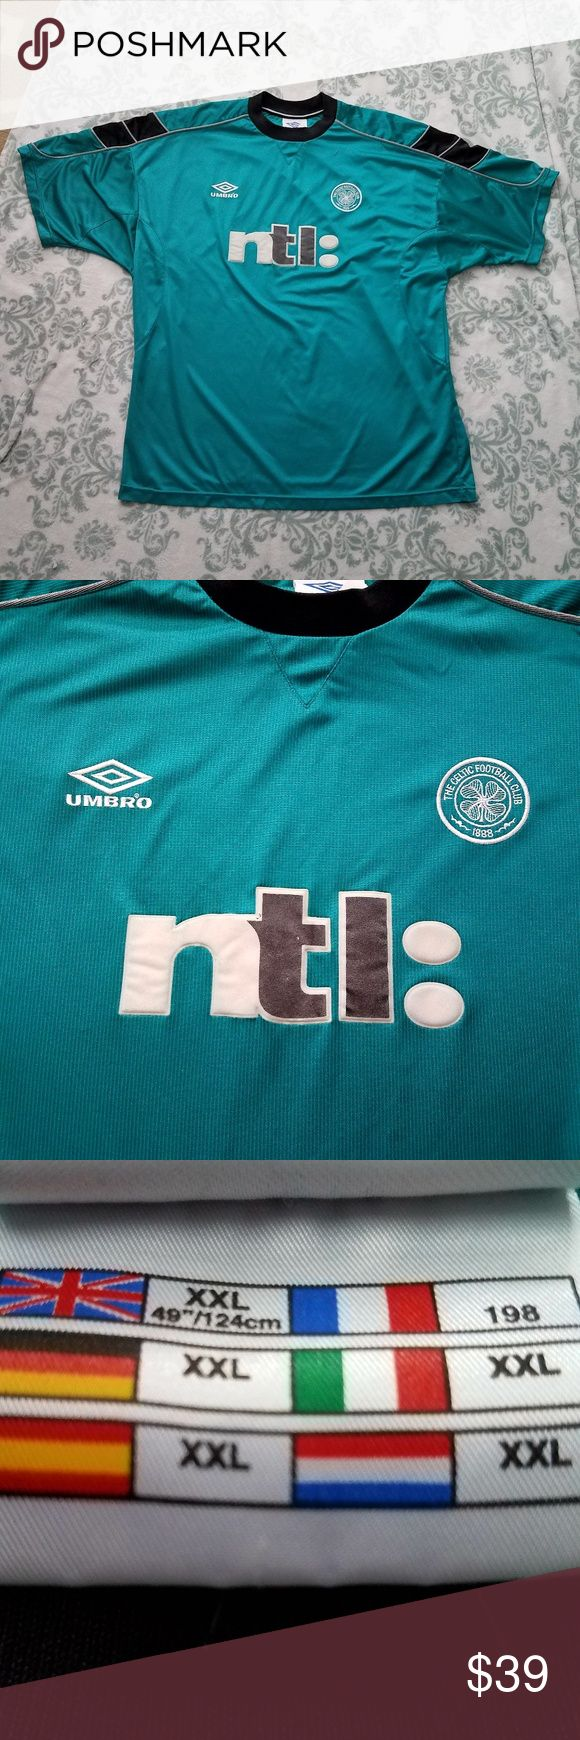 UMBRO XXL CELTIC FOOTBALL CLUB 1888 Soccer Jersey UMBRO Size XXL CELTIC FOOTBALL CLUB 1888 Soccer Jersey Shirt Scotland Glasgow  This jersey is a unique teal green with black, white, and silver accents. EUC. I do not see any holes or stains. The pit-to-pit measurement is 25 inches and the length is 31 inches.  Thank you for looking and please check out my closet!  A20 Umbro Shirts Tees - Short Sleeve